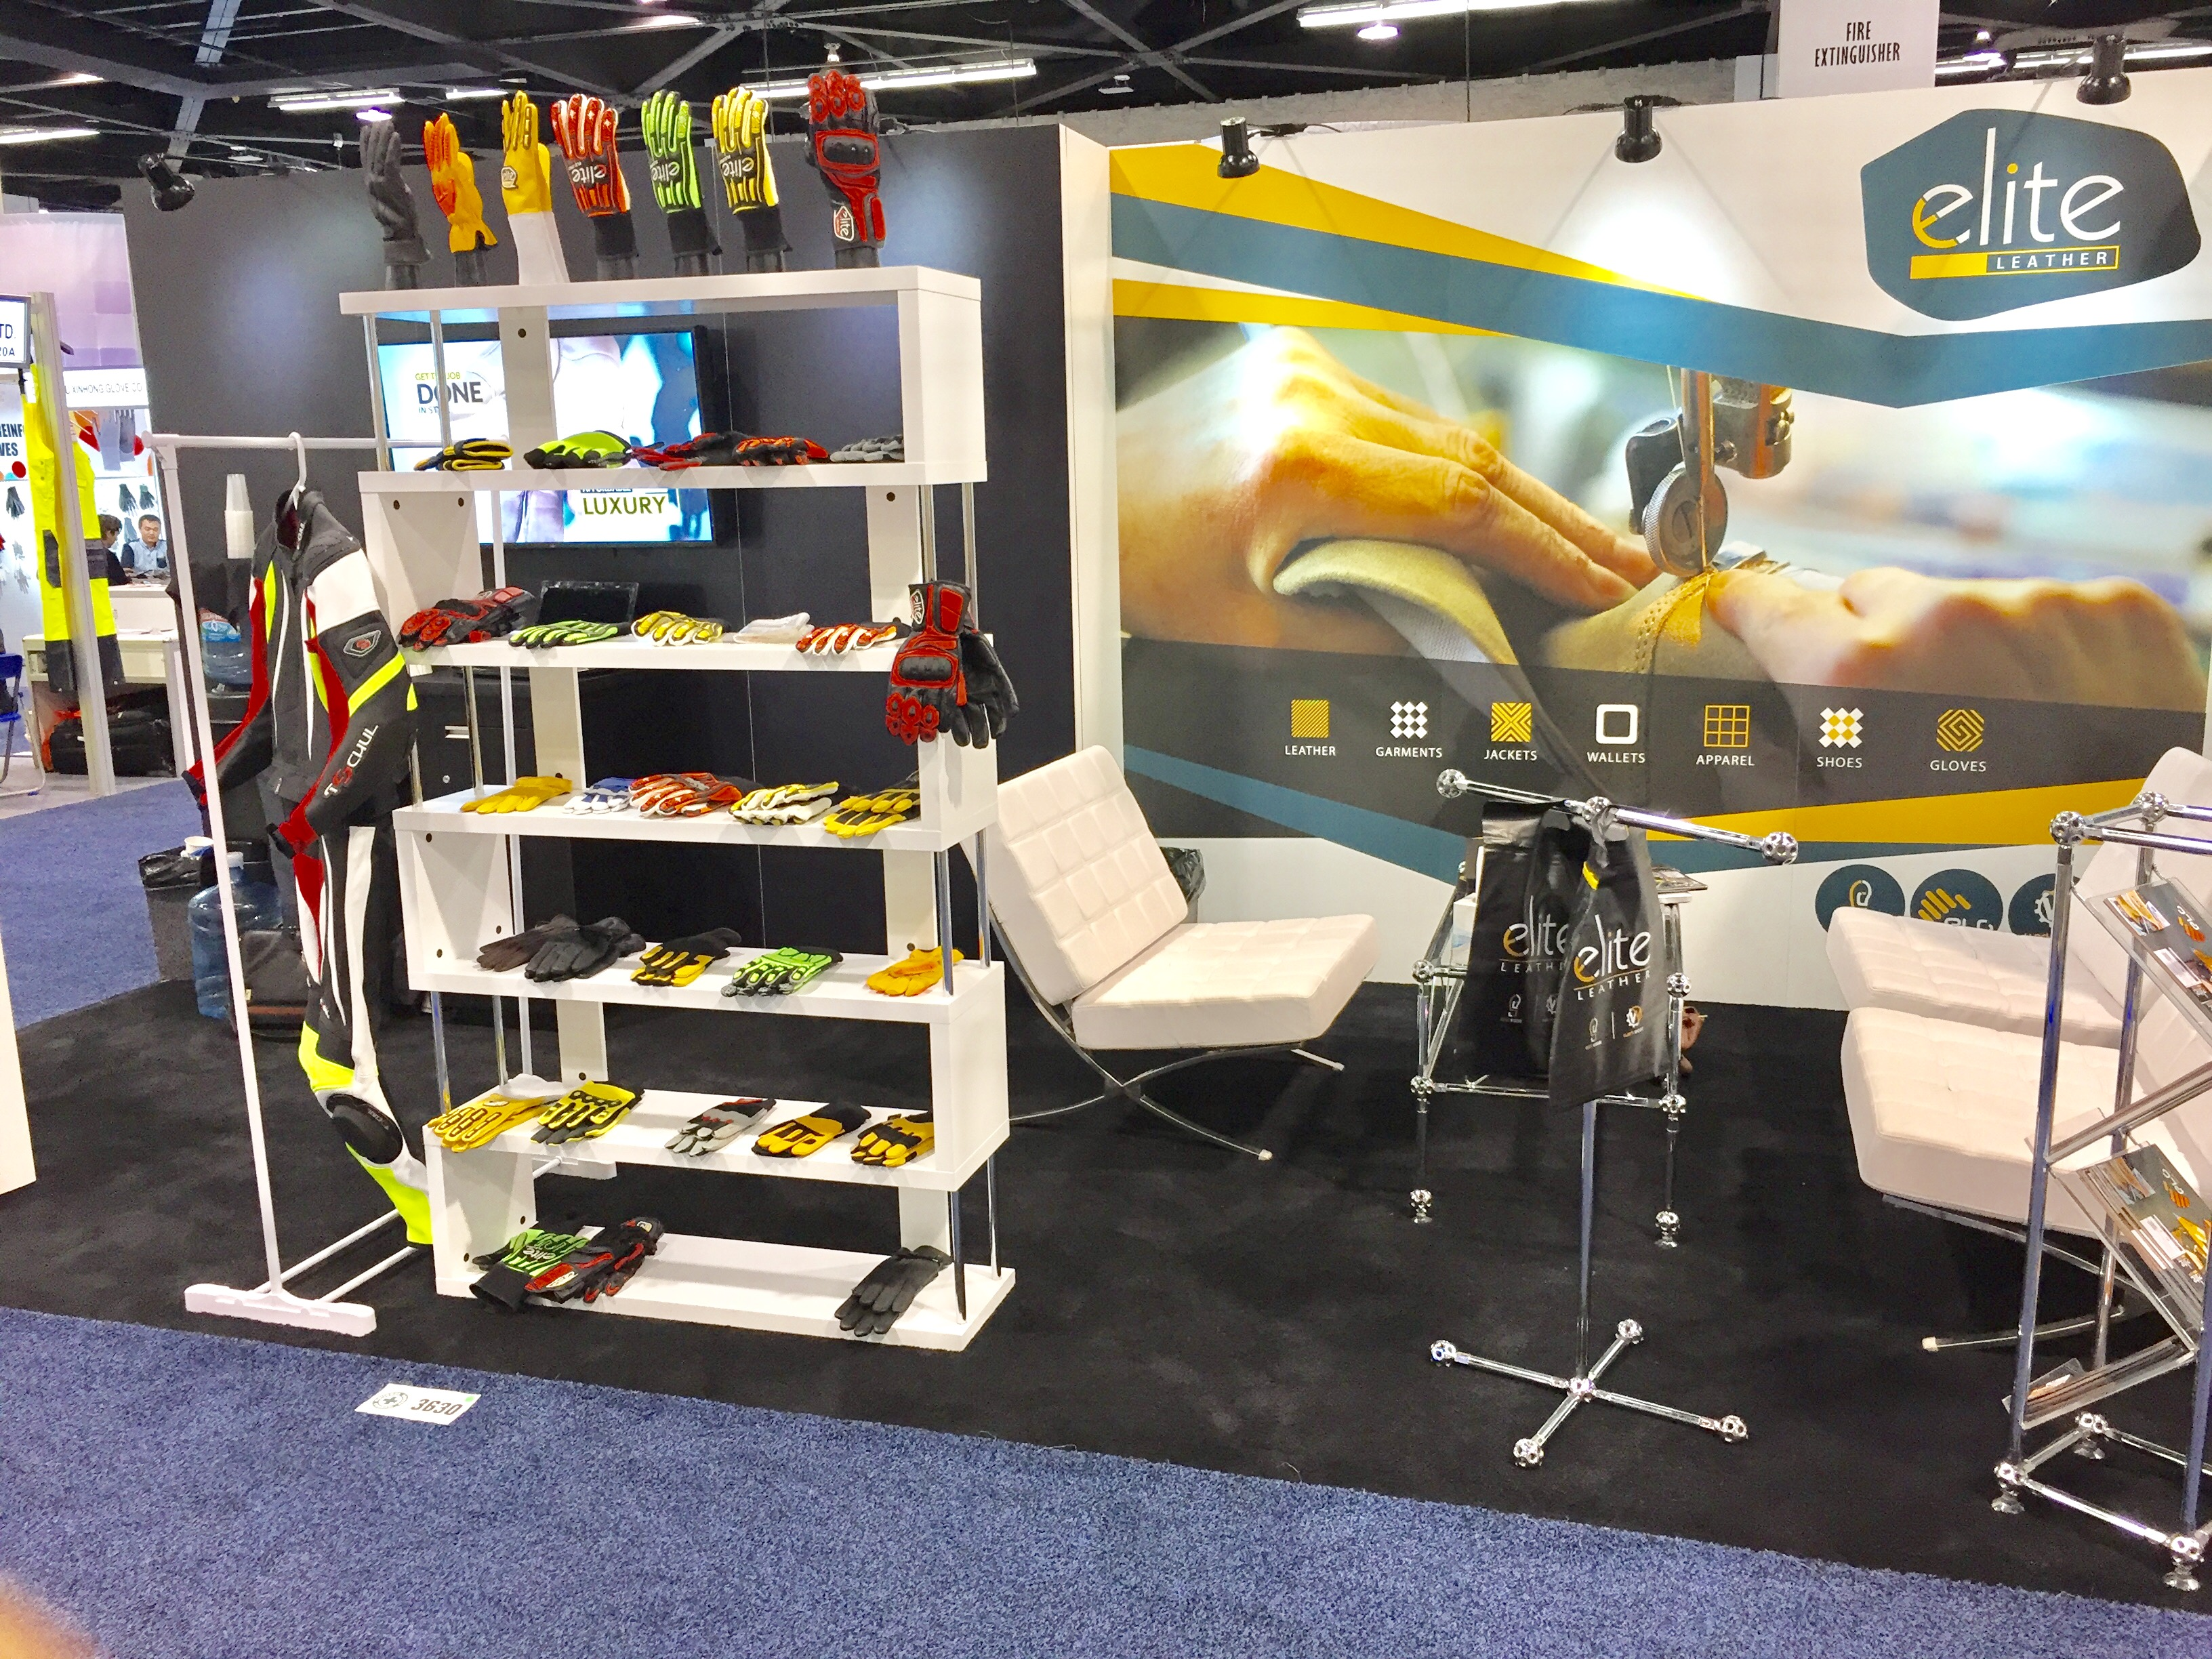 Elite Leather NSC 2016 Booth 3630 Seating Arrangement